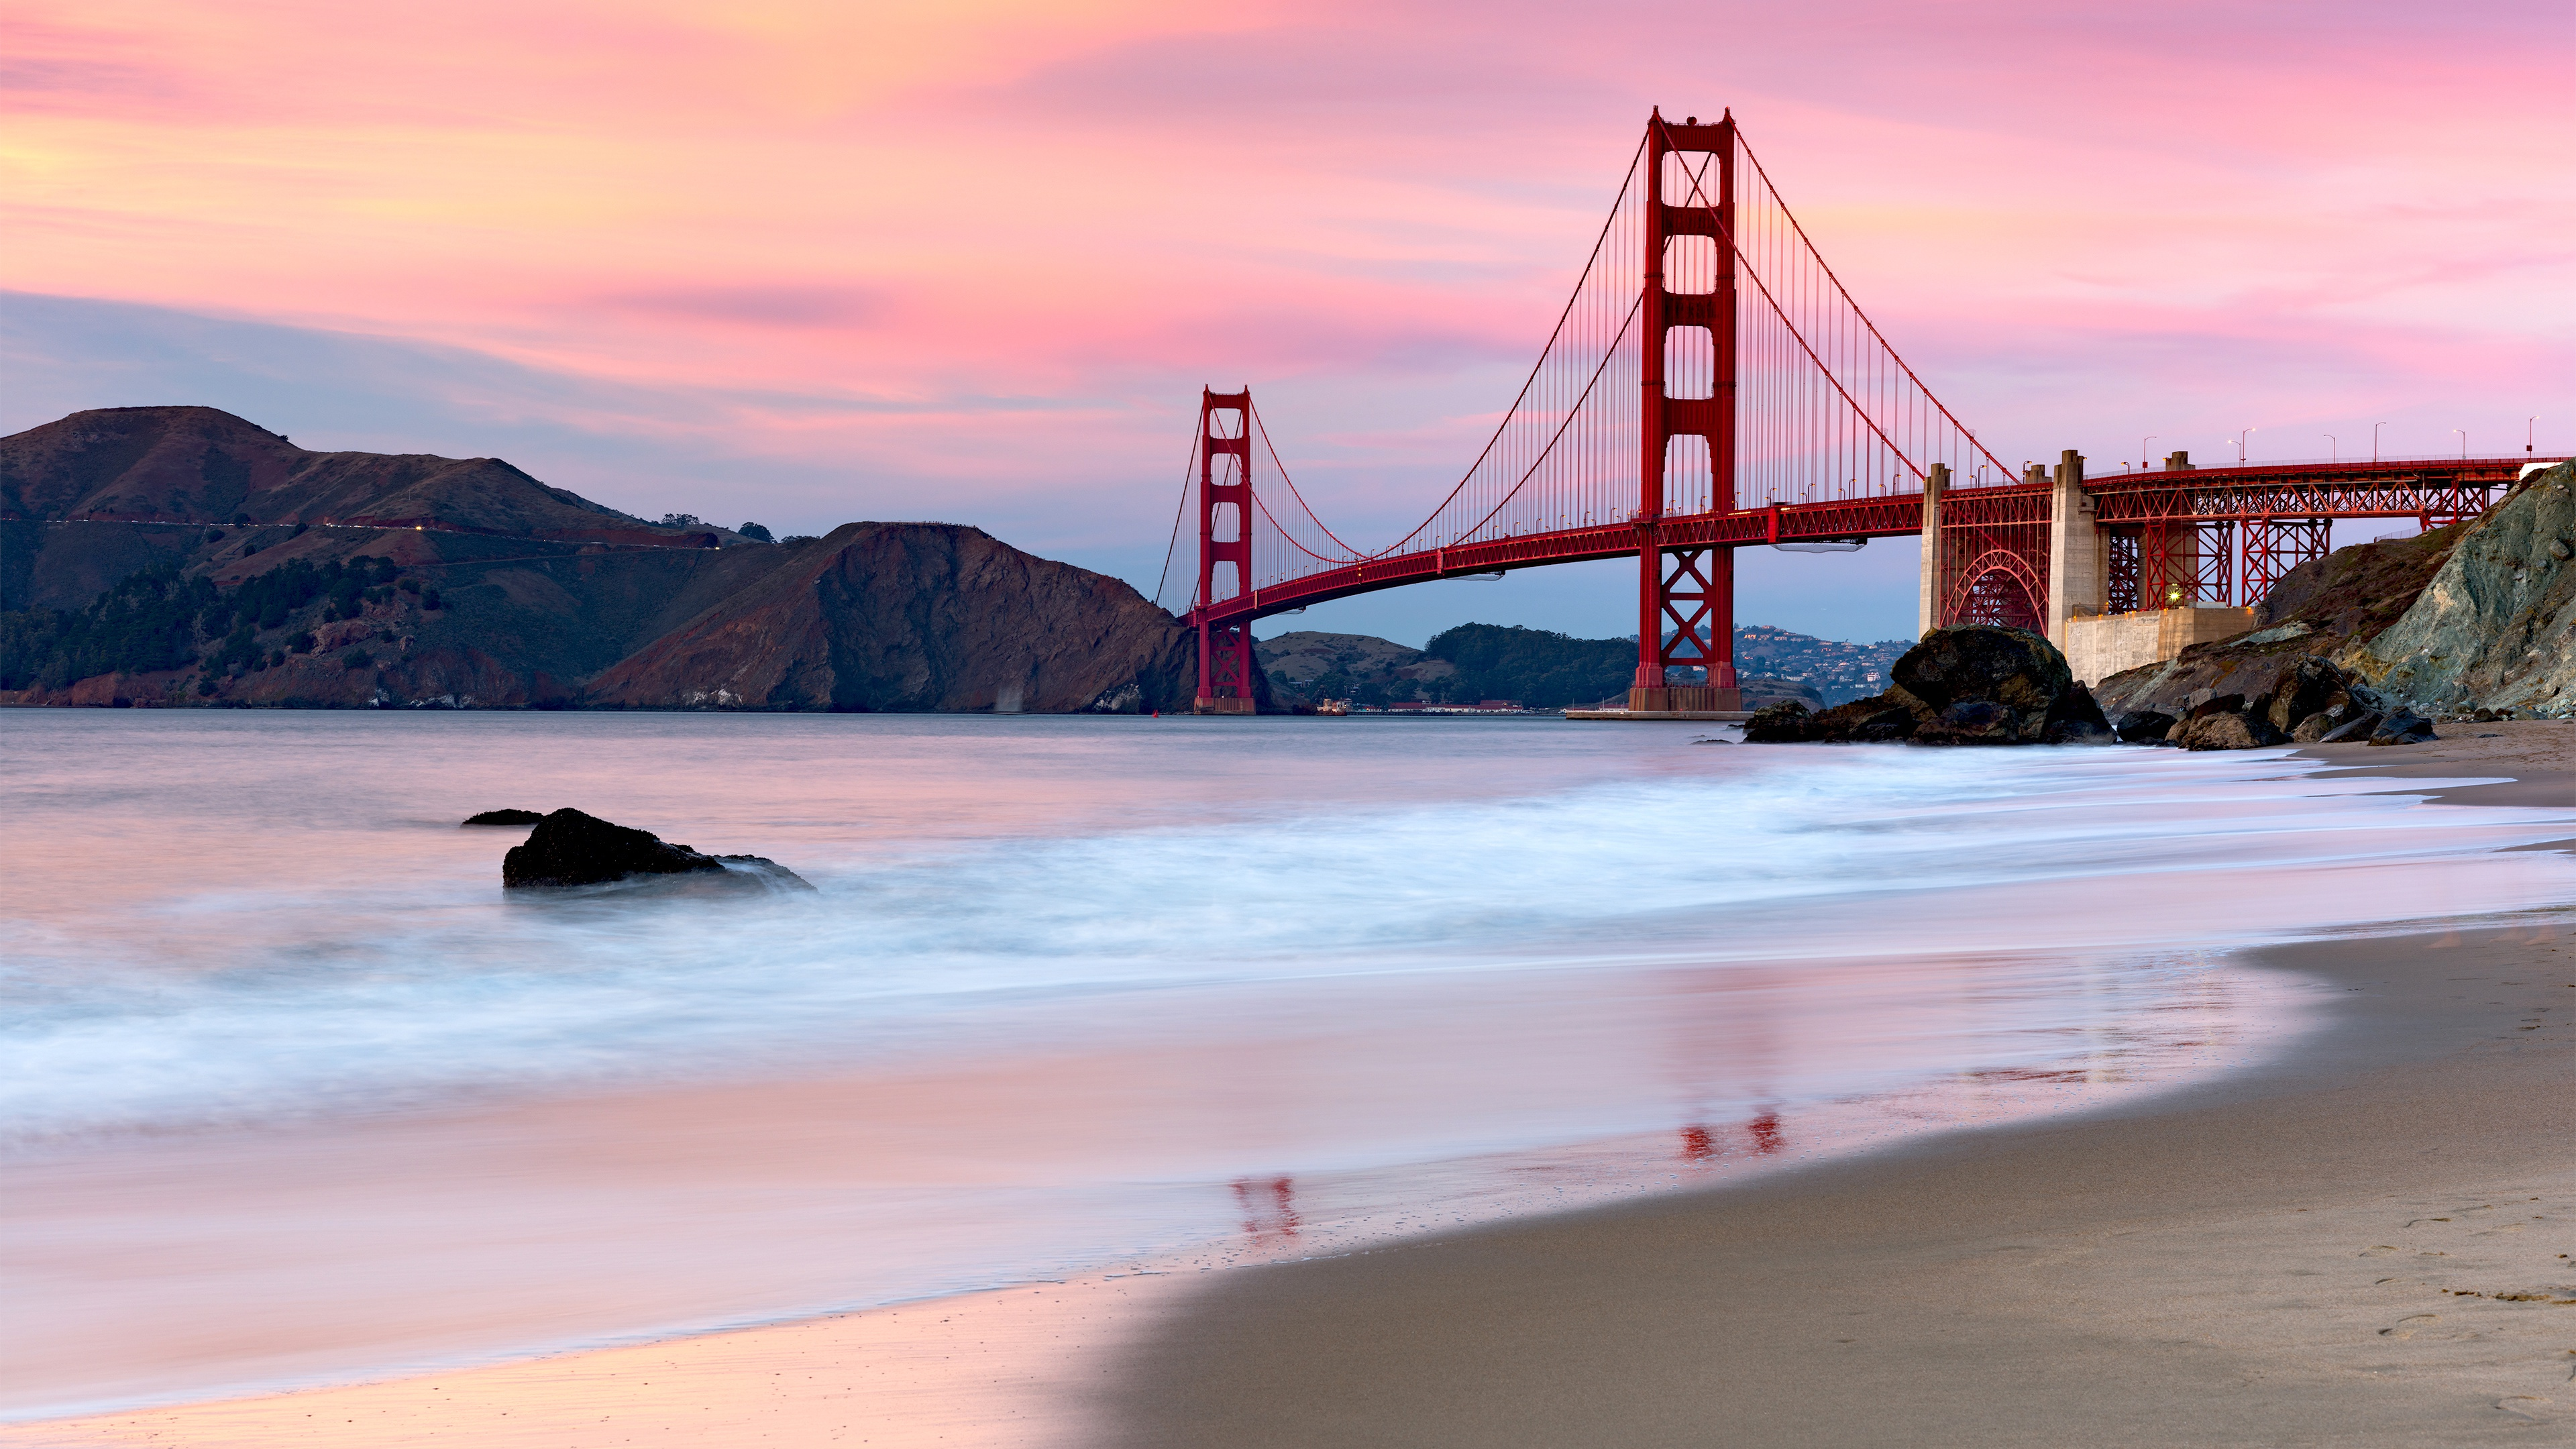 golden gate bridge san francisco 1569187791 - Golden Gate Bridge San Francisco - san francisco wallpapers, nature wallpapers, landscape wallpapers, hd-wallpapers, golden gate bridge wallpapers, 4k-wallpapers